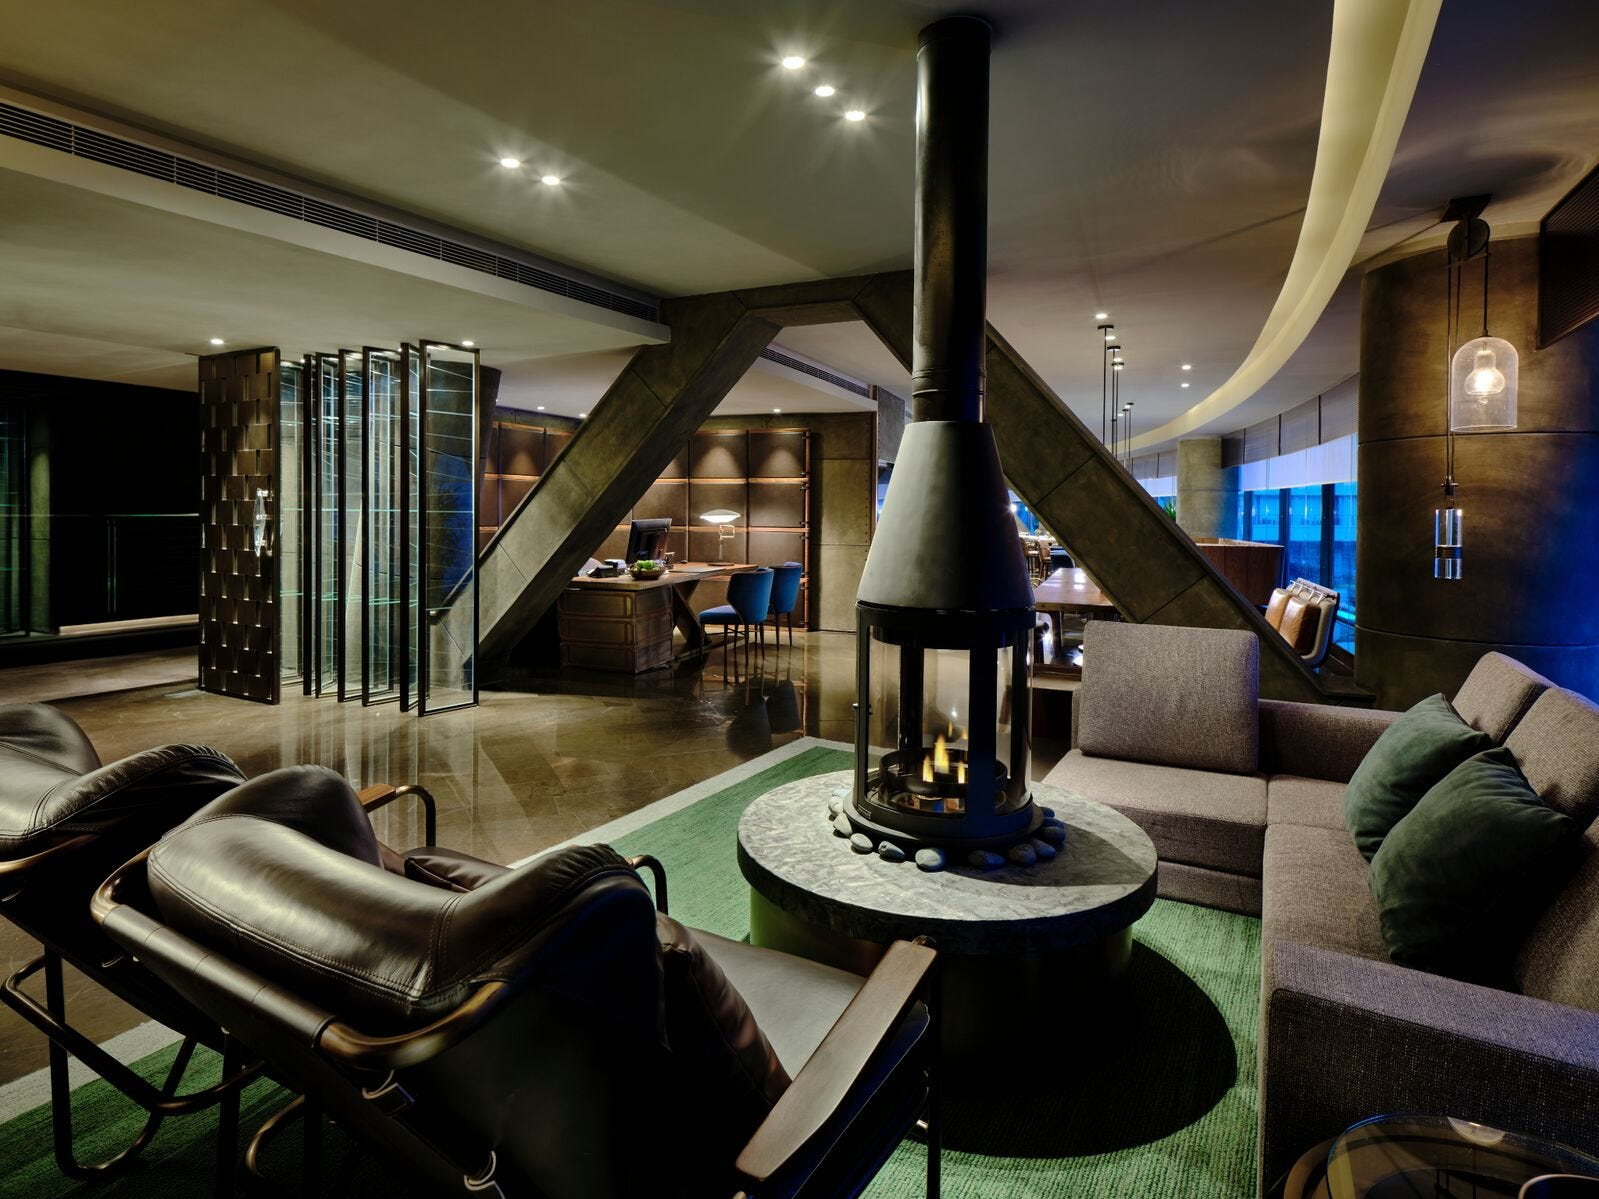 The rustic-chic vibe in the lounge extends to this modern fireplace surrounded by leather chairs (the hotel is near the Sheshan Mountains, after all). Here, guests can sip complimentary wine or cocktails each evening while planning out their recreational activities for their stay.